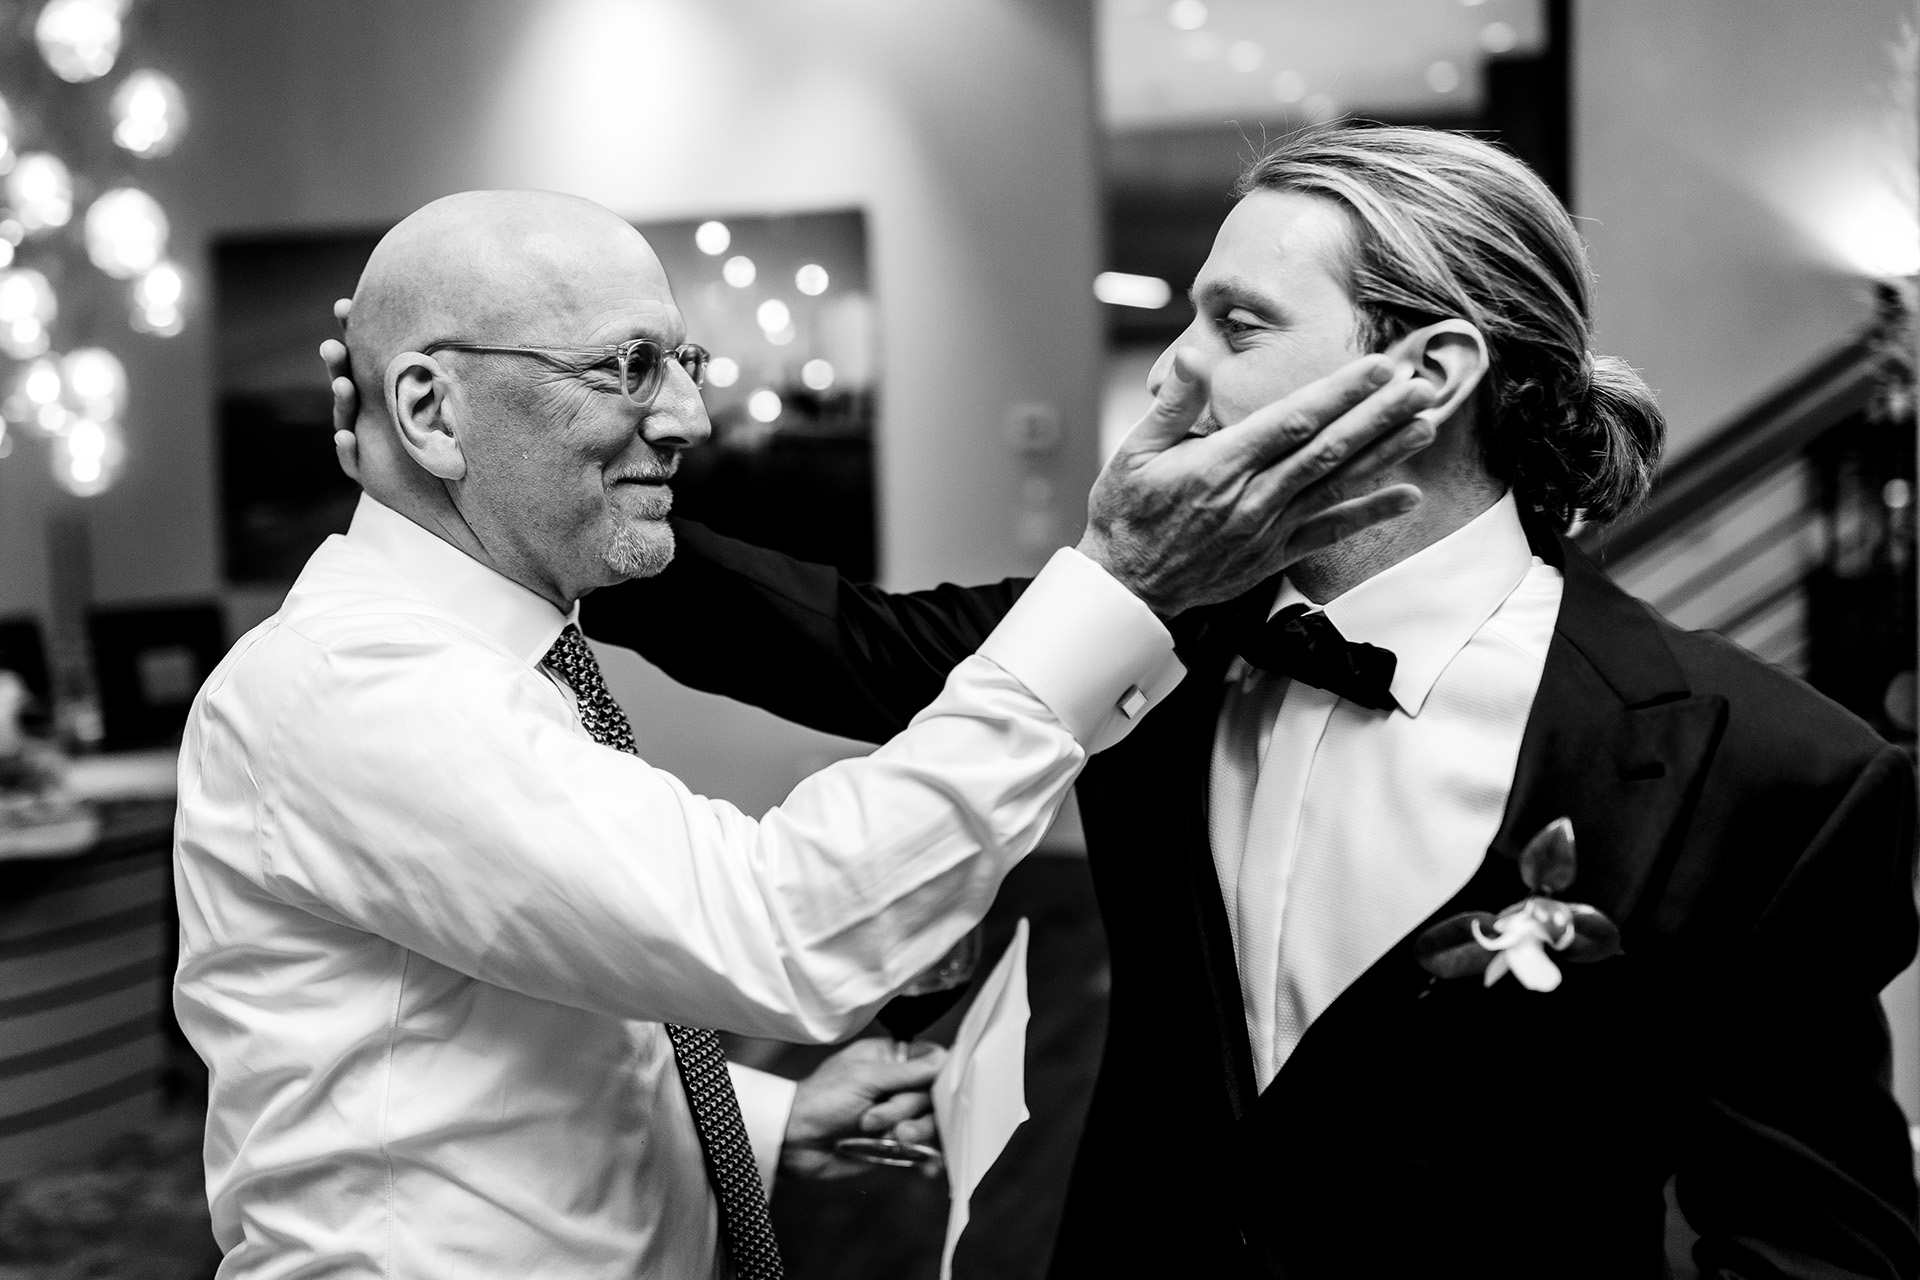 Mountain Wedding Photography for Vail Colorado | The groom and his father share a tender moment together after the ceremony